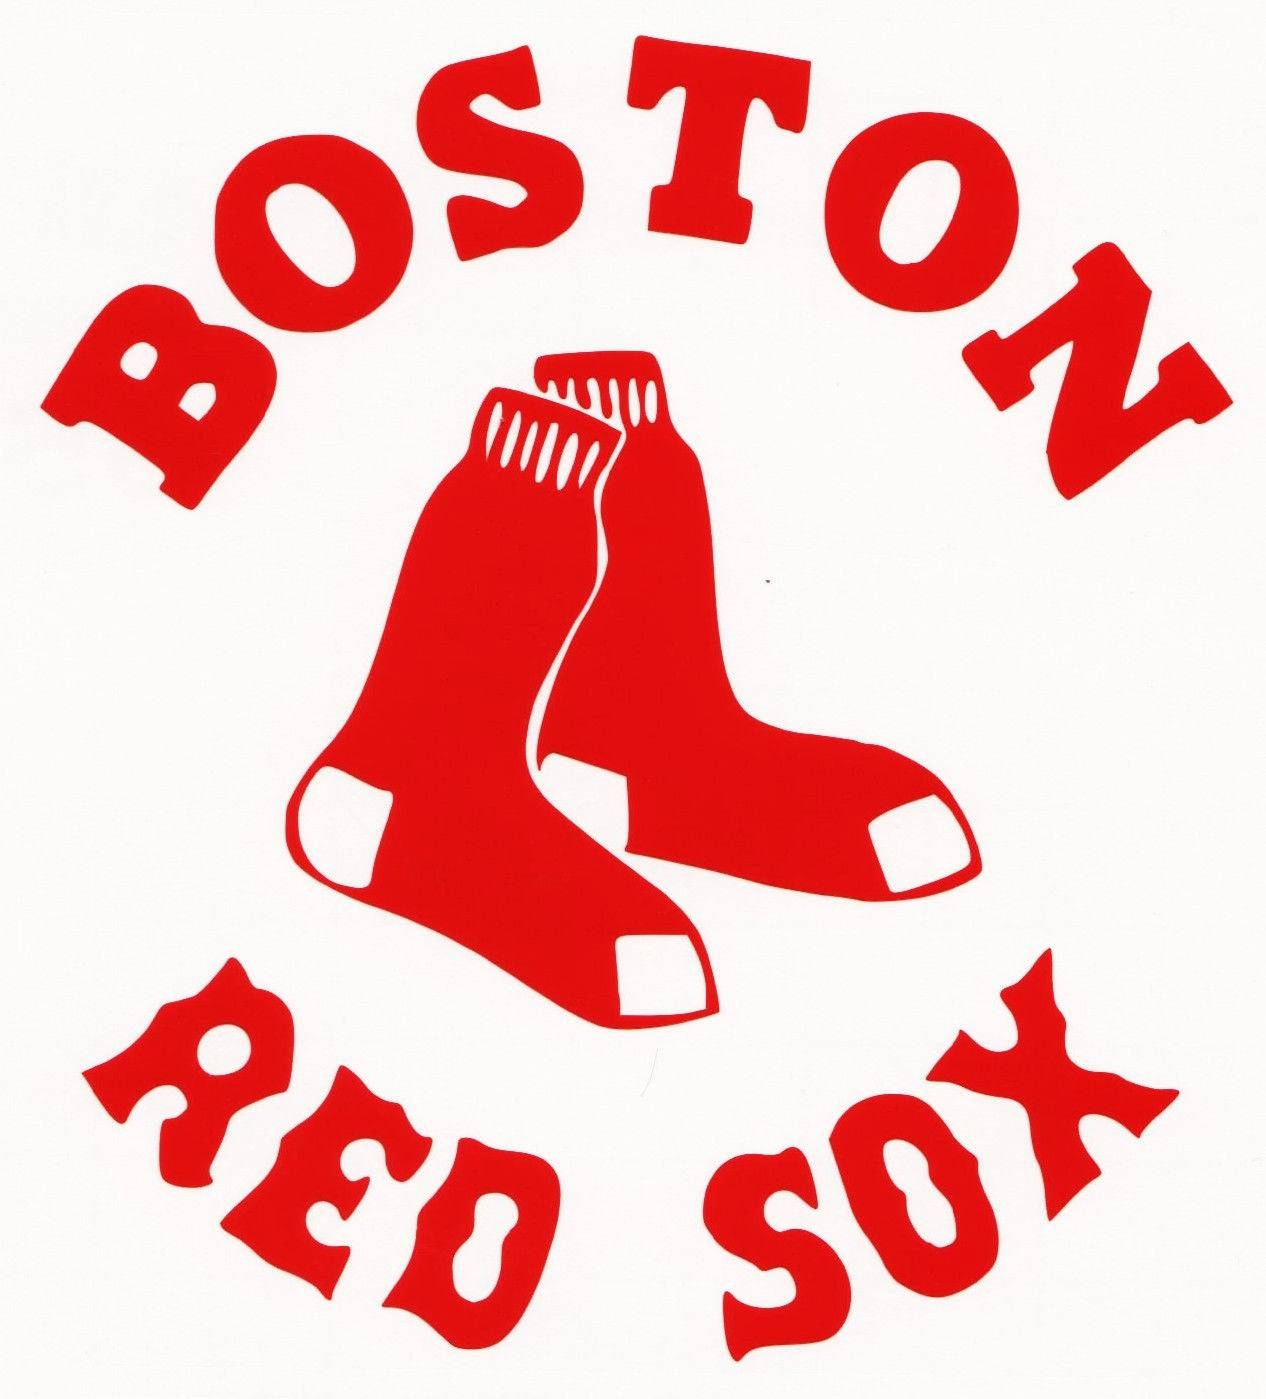 Wall Decal » Boston Red Sox Wall Decals – Thousands Pictures Of With Regard To Most Recent Red Sox Wall Decals (View 6 of 30)